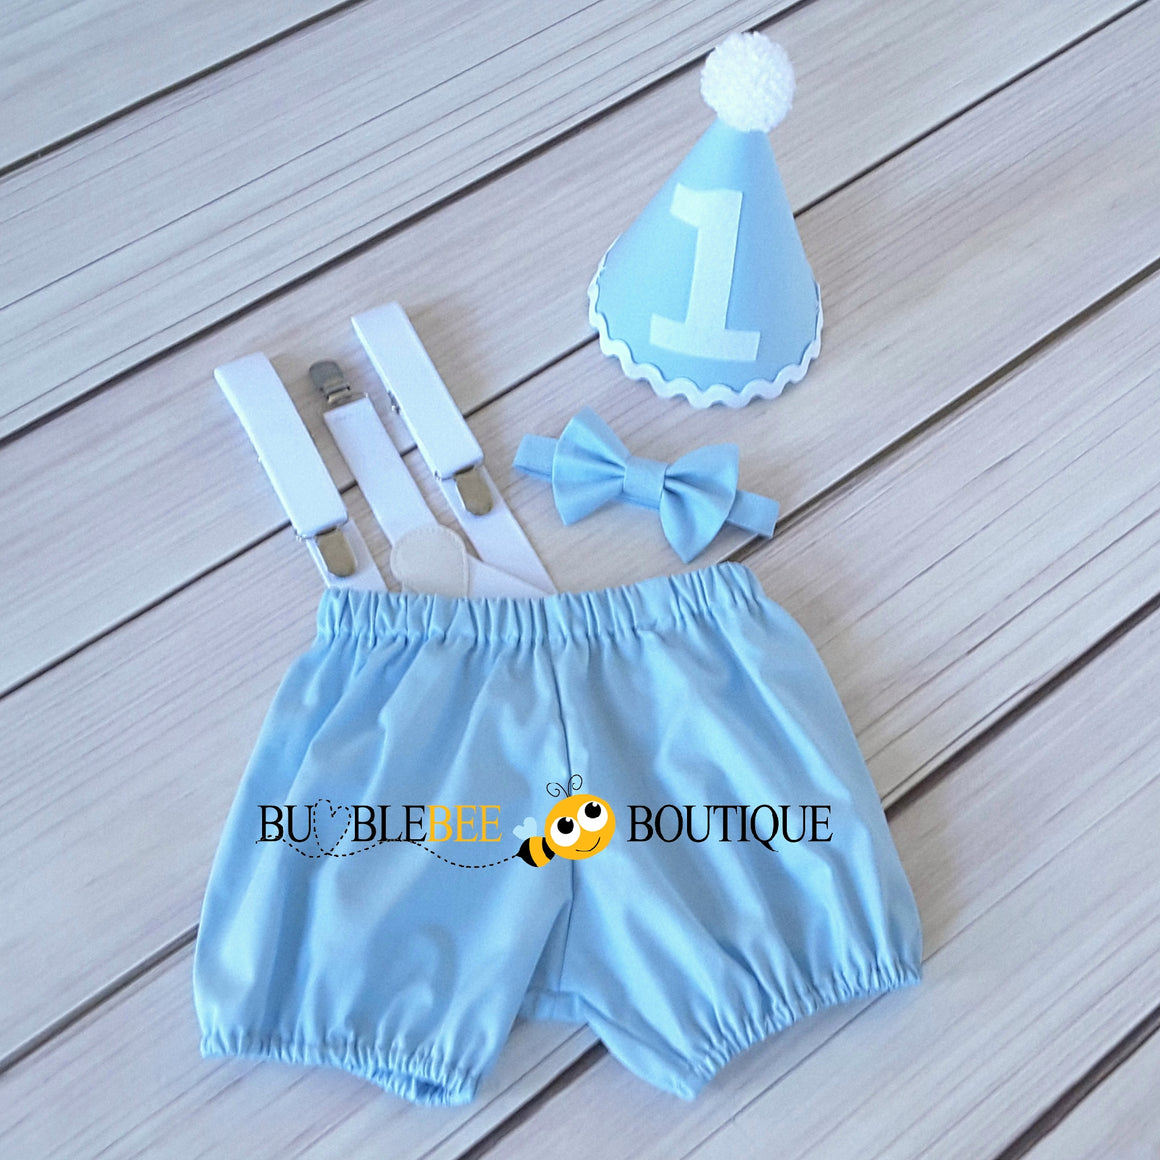 Baby Blue & White Cake Smash Outfit